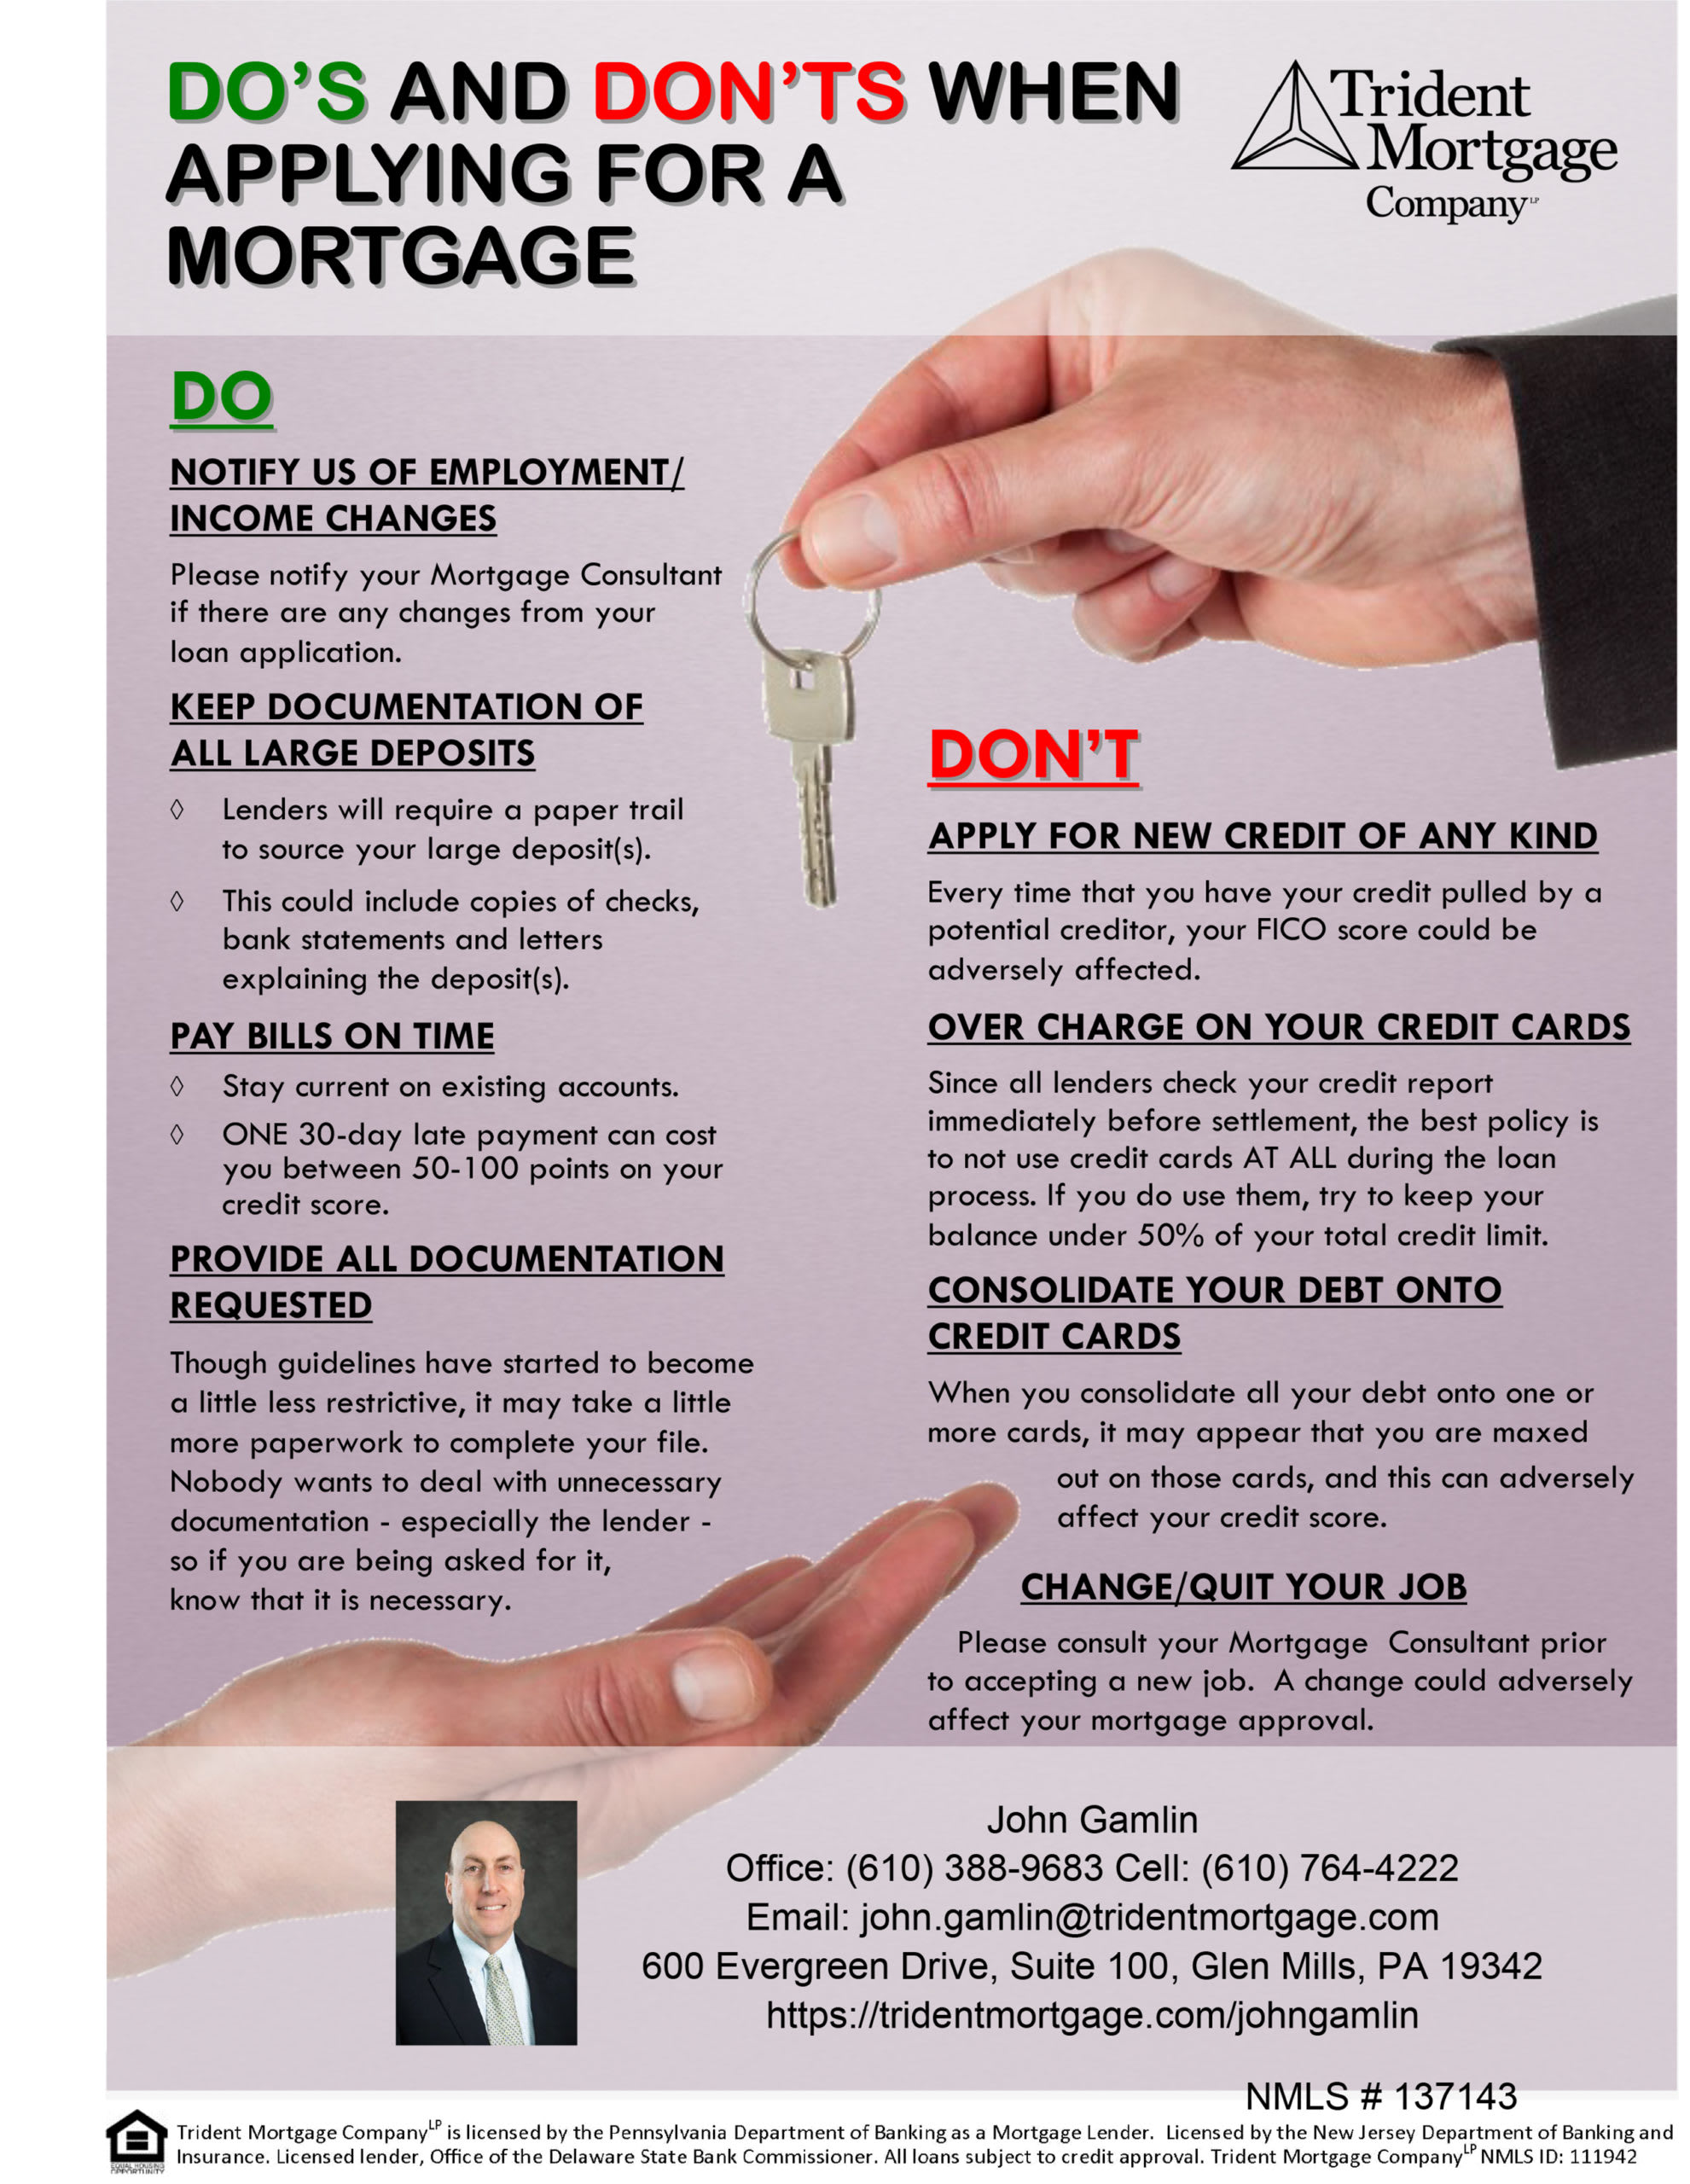 Do's & Don'ts when Applying for a Mortgage